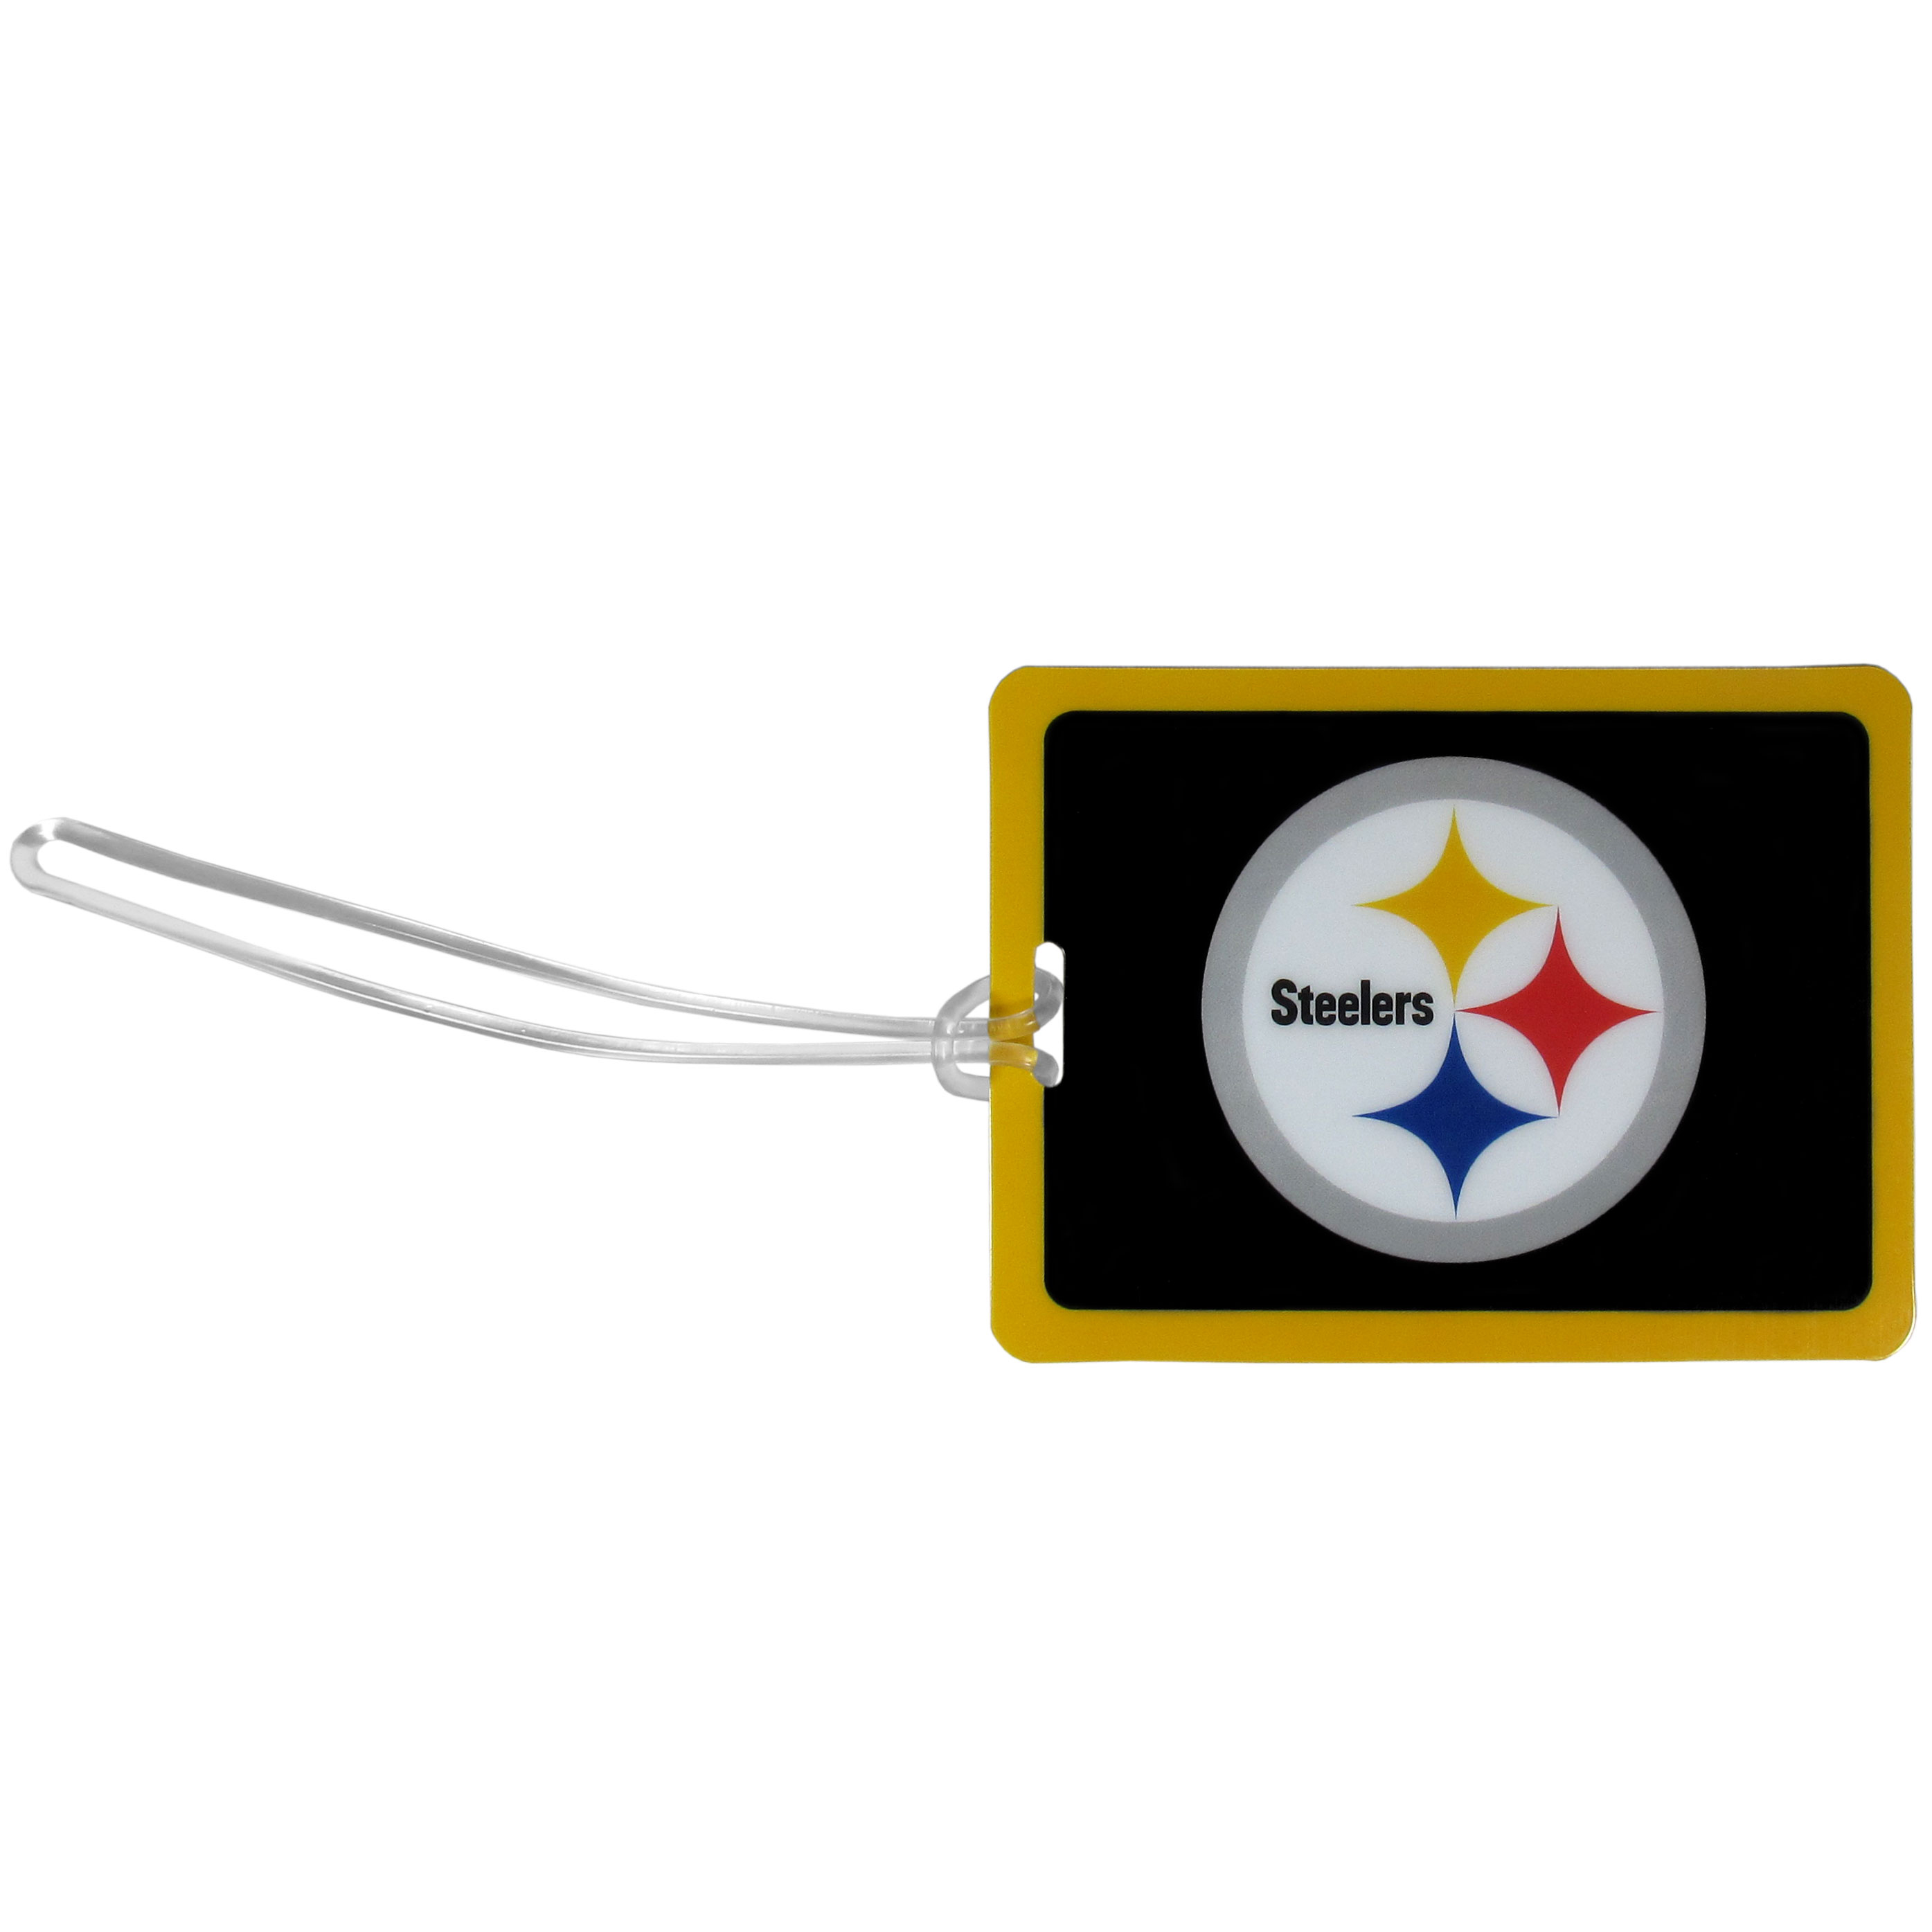 Pittsburgh Steelers Vinyl Luggage Tag - Tired of trying to spot your suitcase or bag in a sea of luggage? Try our large and colorful Pittsburgh Steelers luggage tag set. The tag is 4x3 inches and has a 5 inch cord to attach it easily to your bags, backpacks or luggage. The front of the tag features the team logo in a bright, team colored background and you can write you name, address and phone number on the back of the tag.